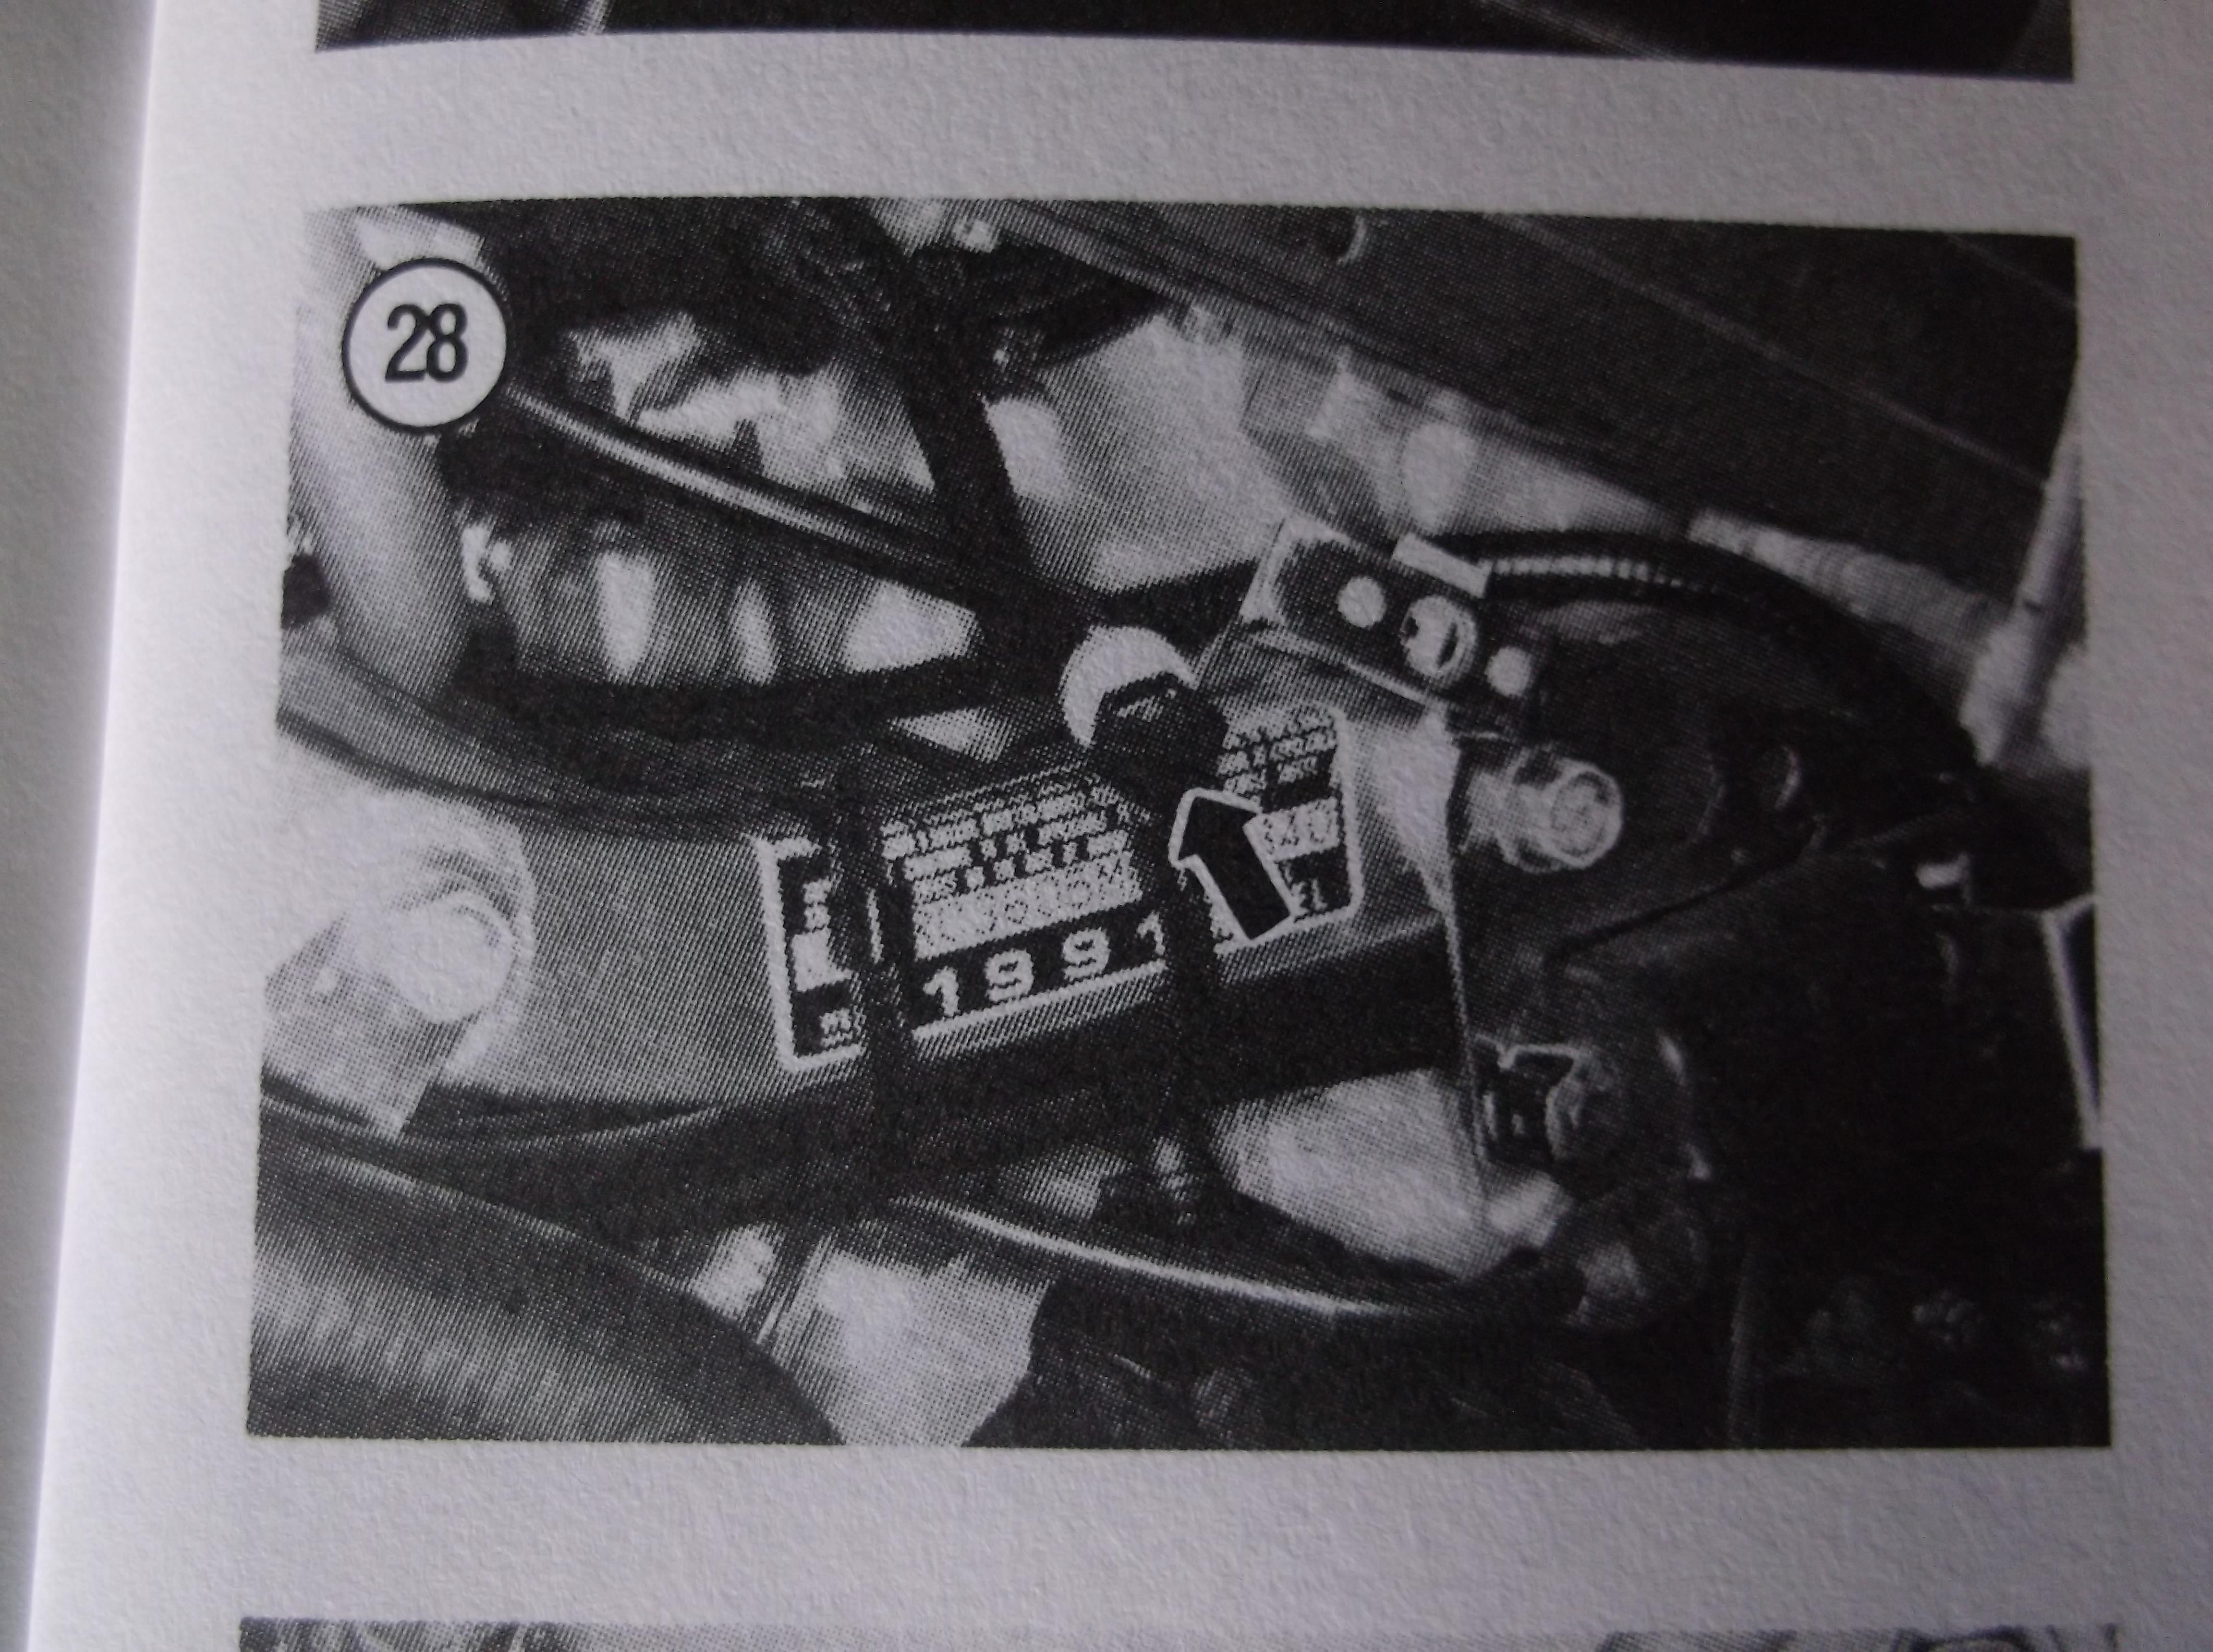 3rd Gen Carb Jet Sizes - Third and Fourth Generation VFR's